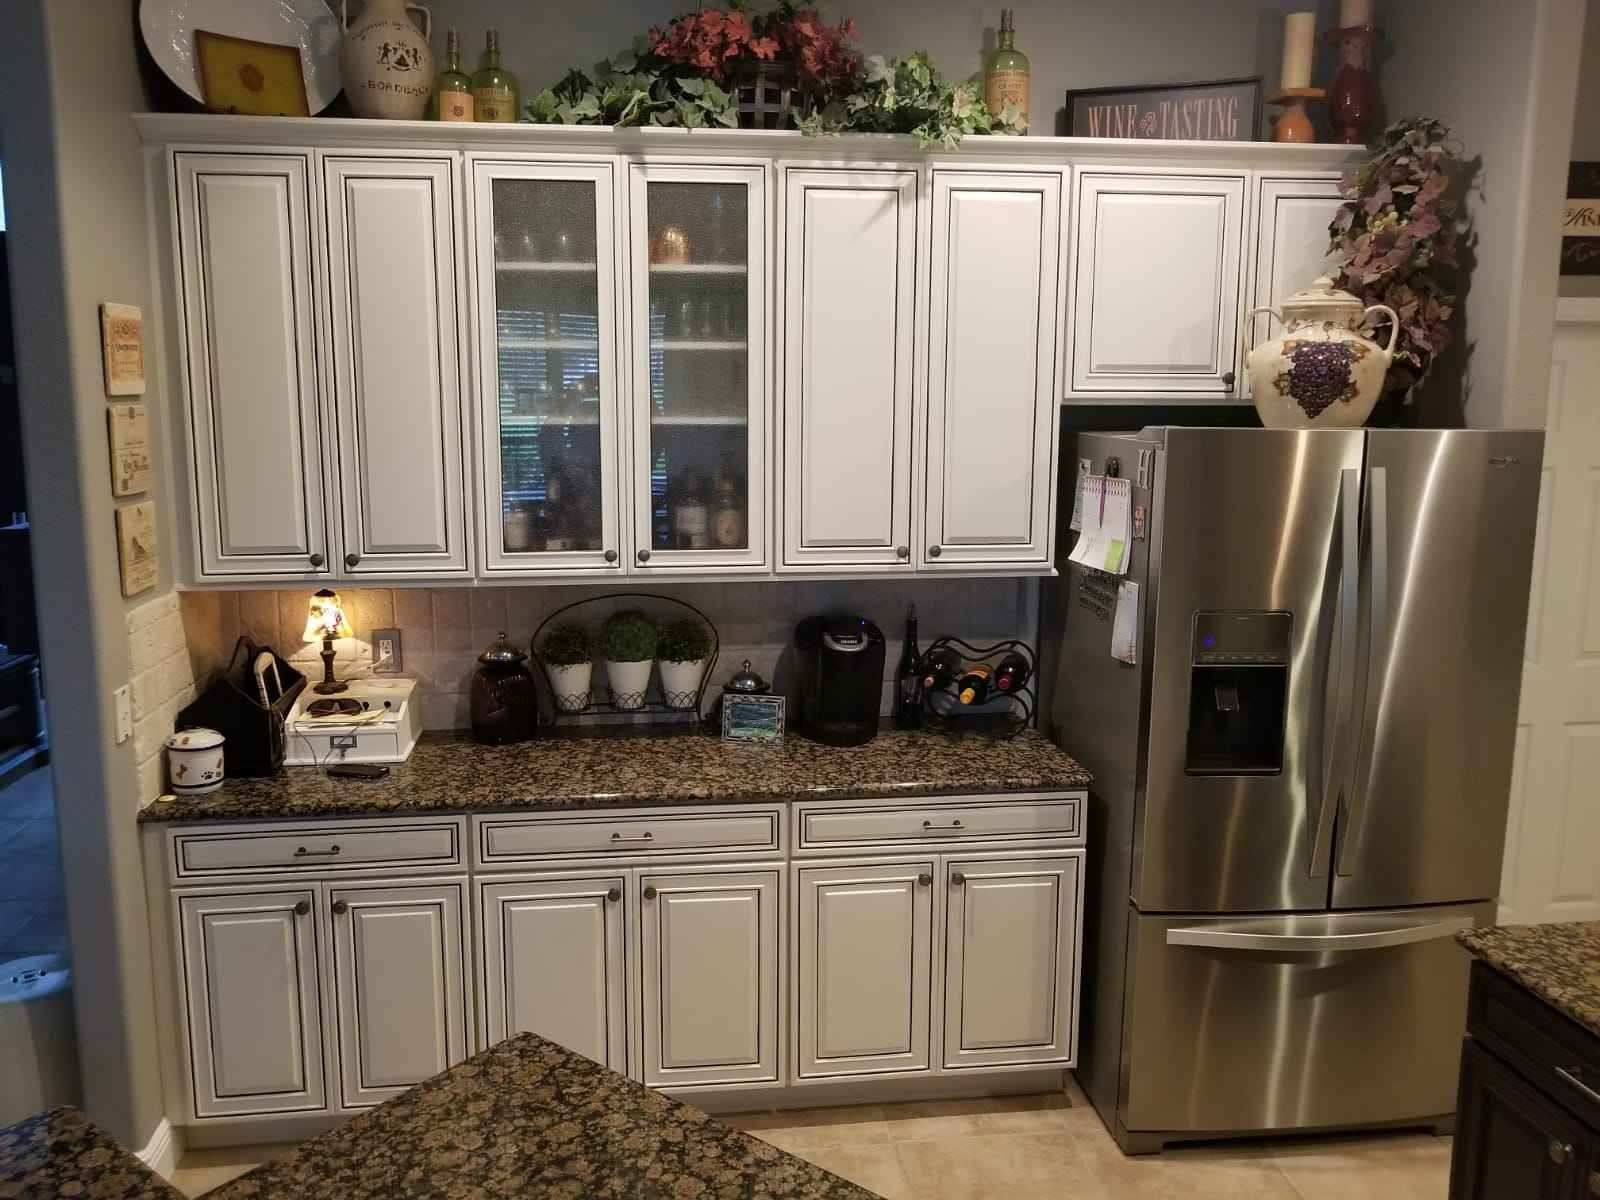 Pin on Kitchen Cabinet Makeover- Before and After